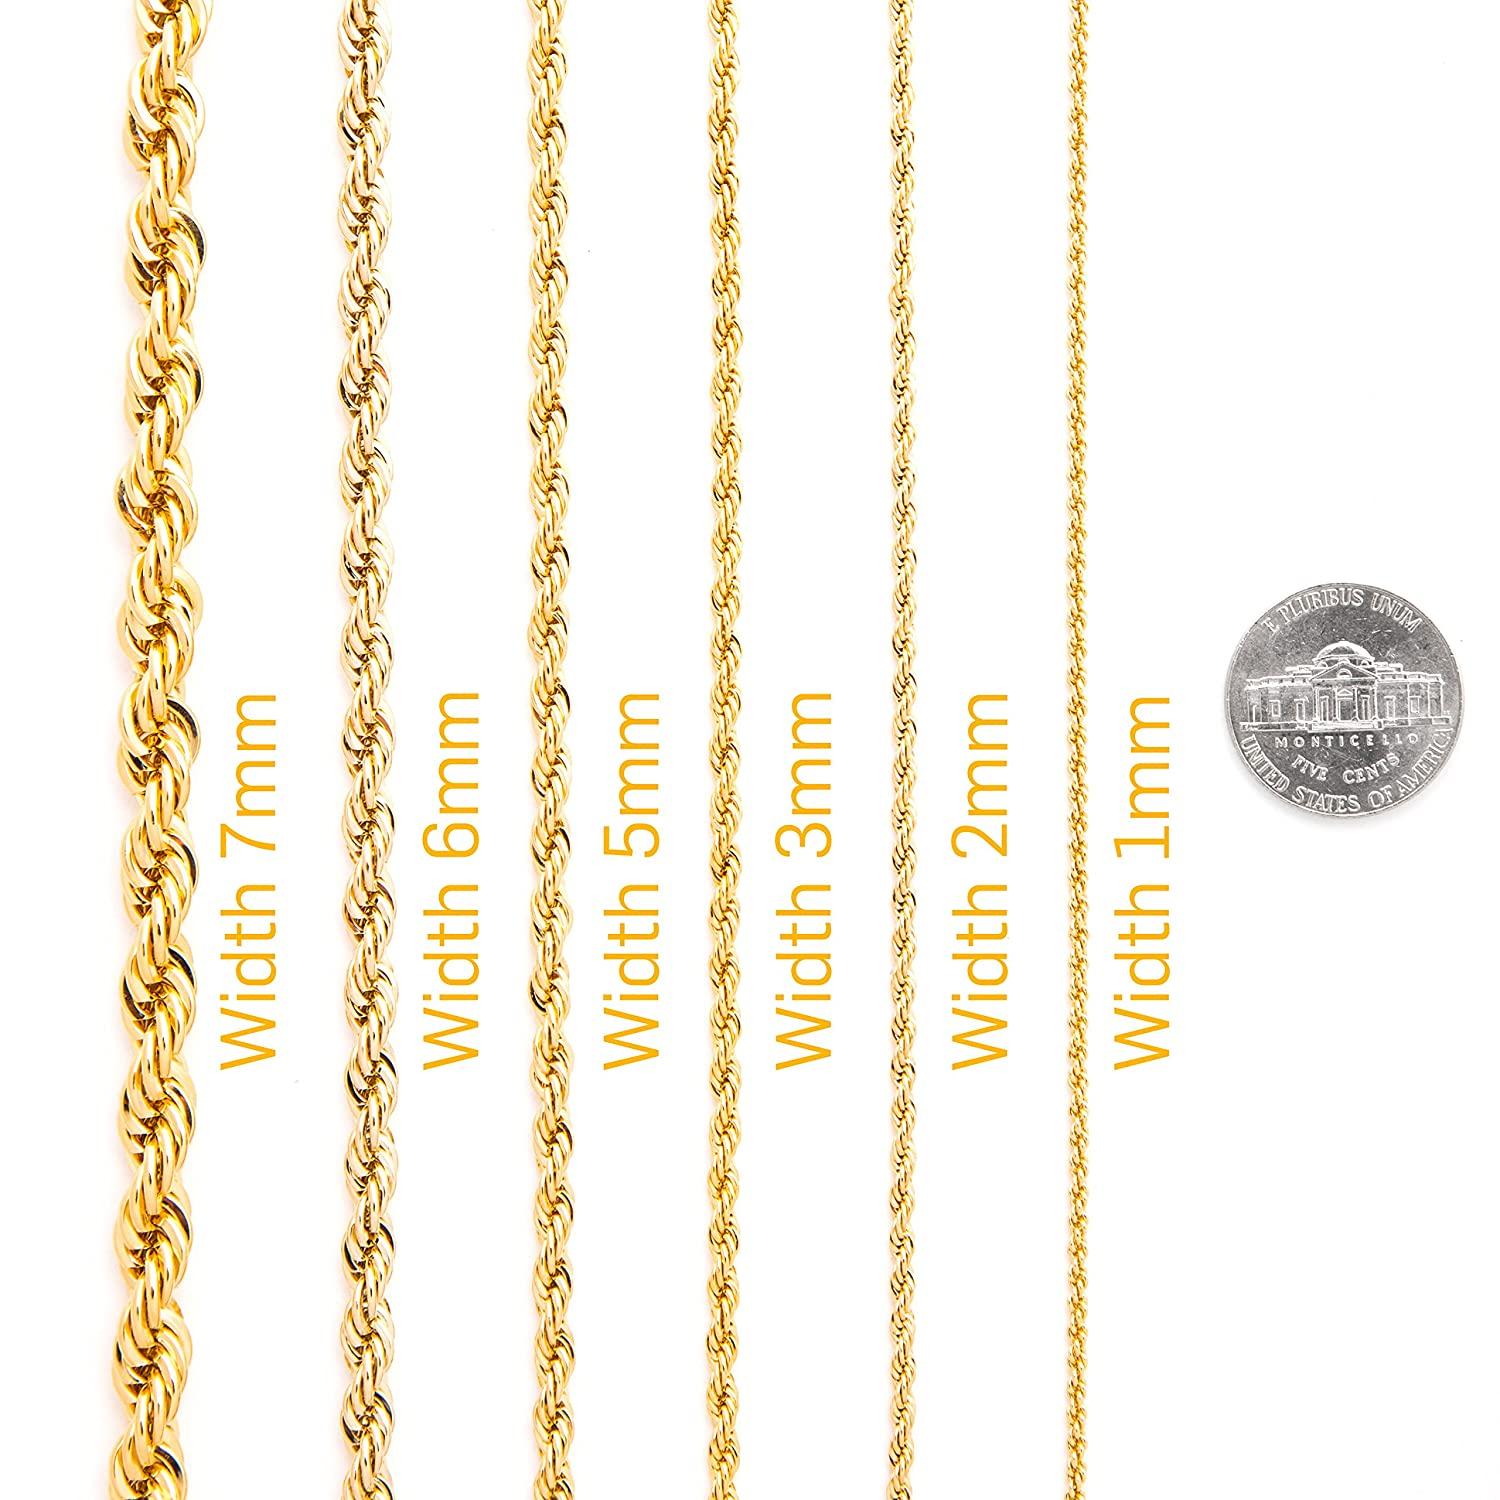 chain diamond link yellow cuban img cut itm necklace real solid gold chains